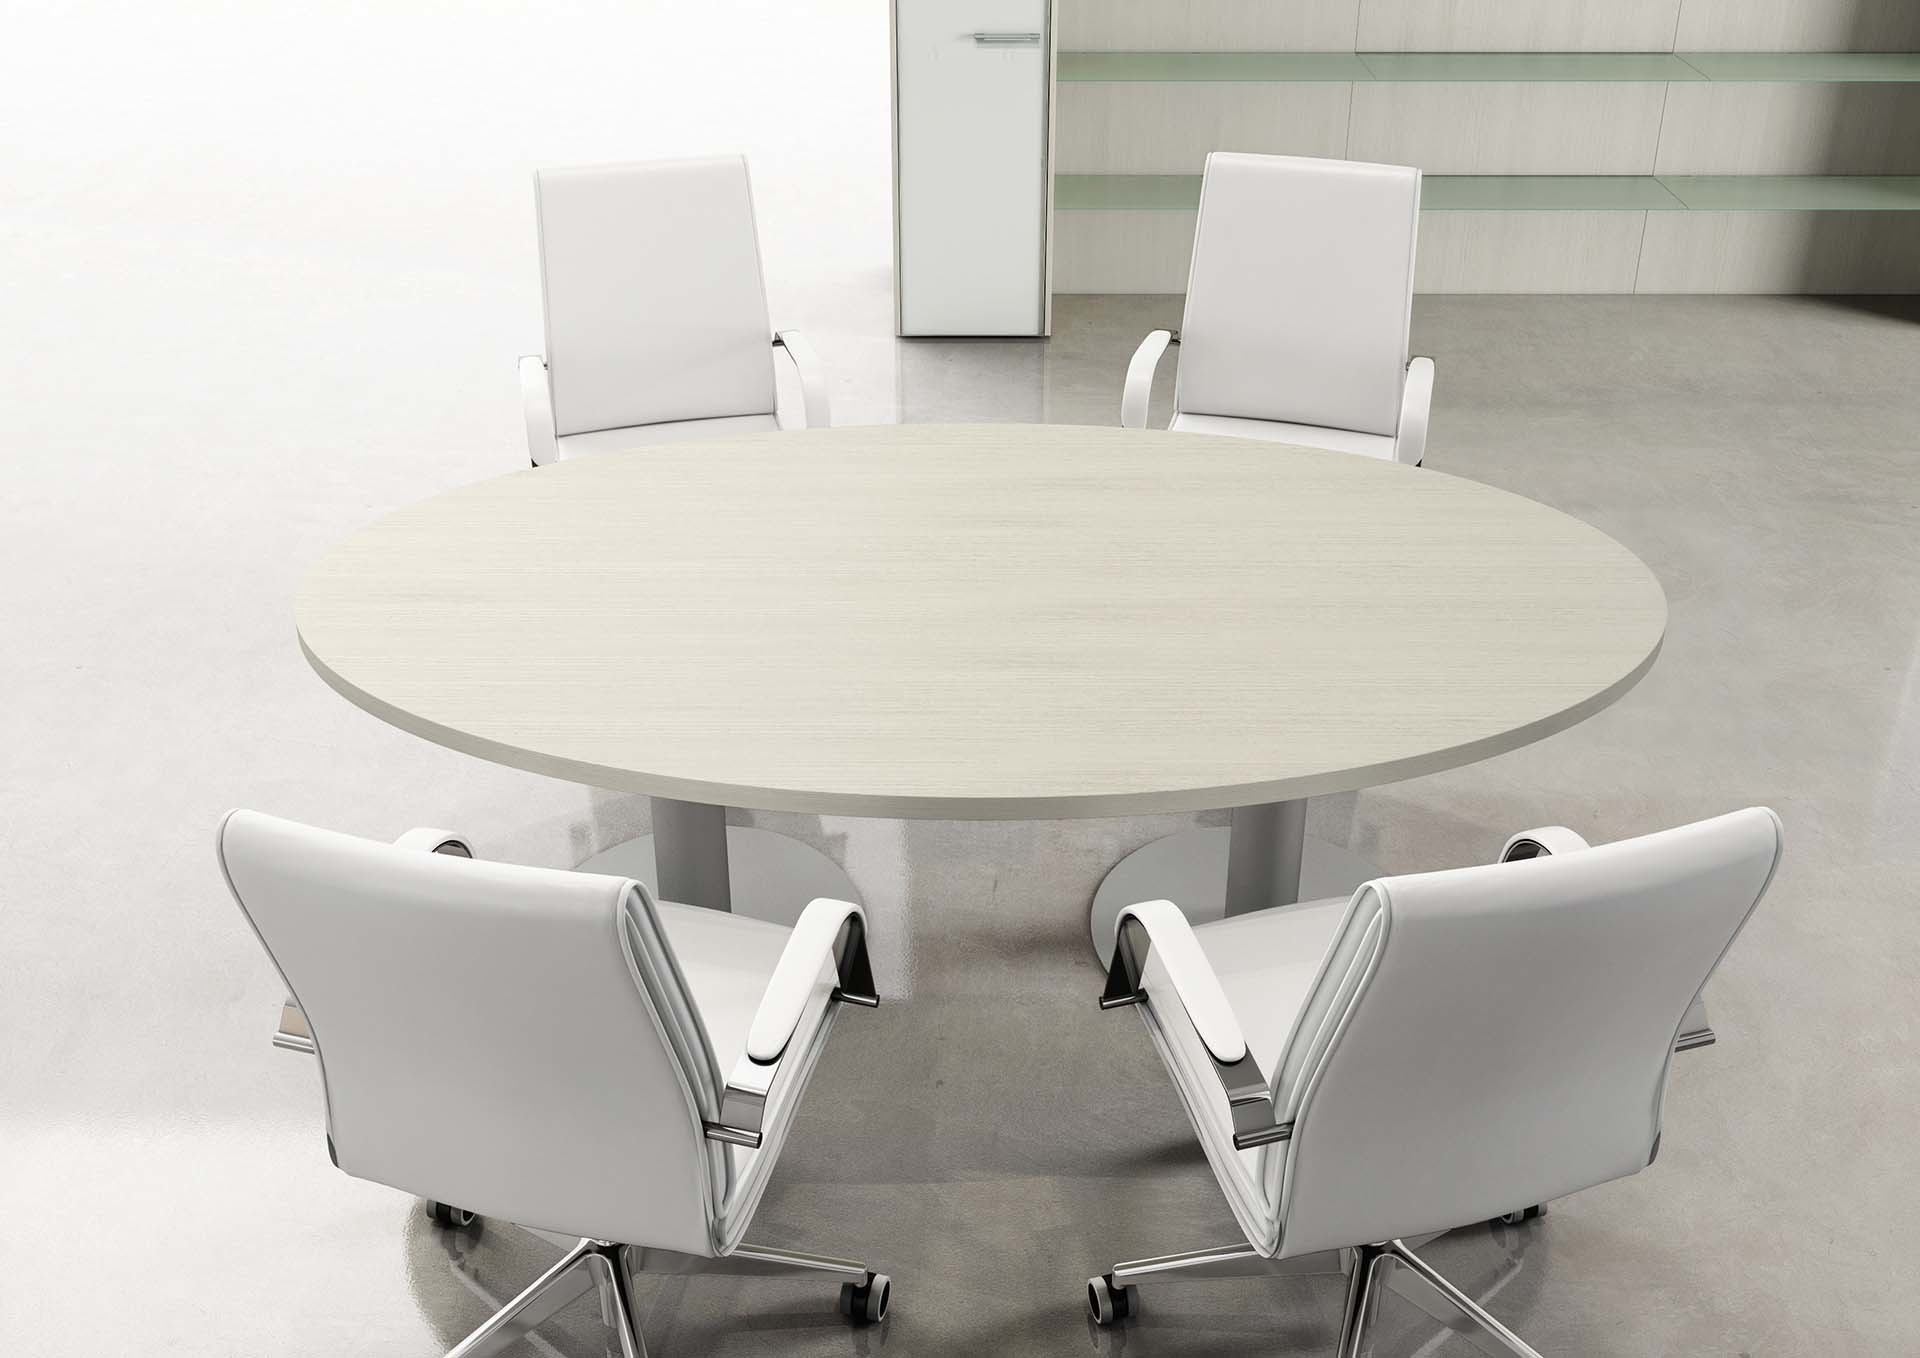 oval-meeting-table-xeno-manager-01.jpg